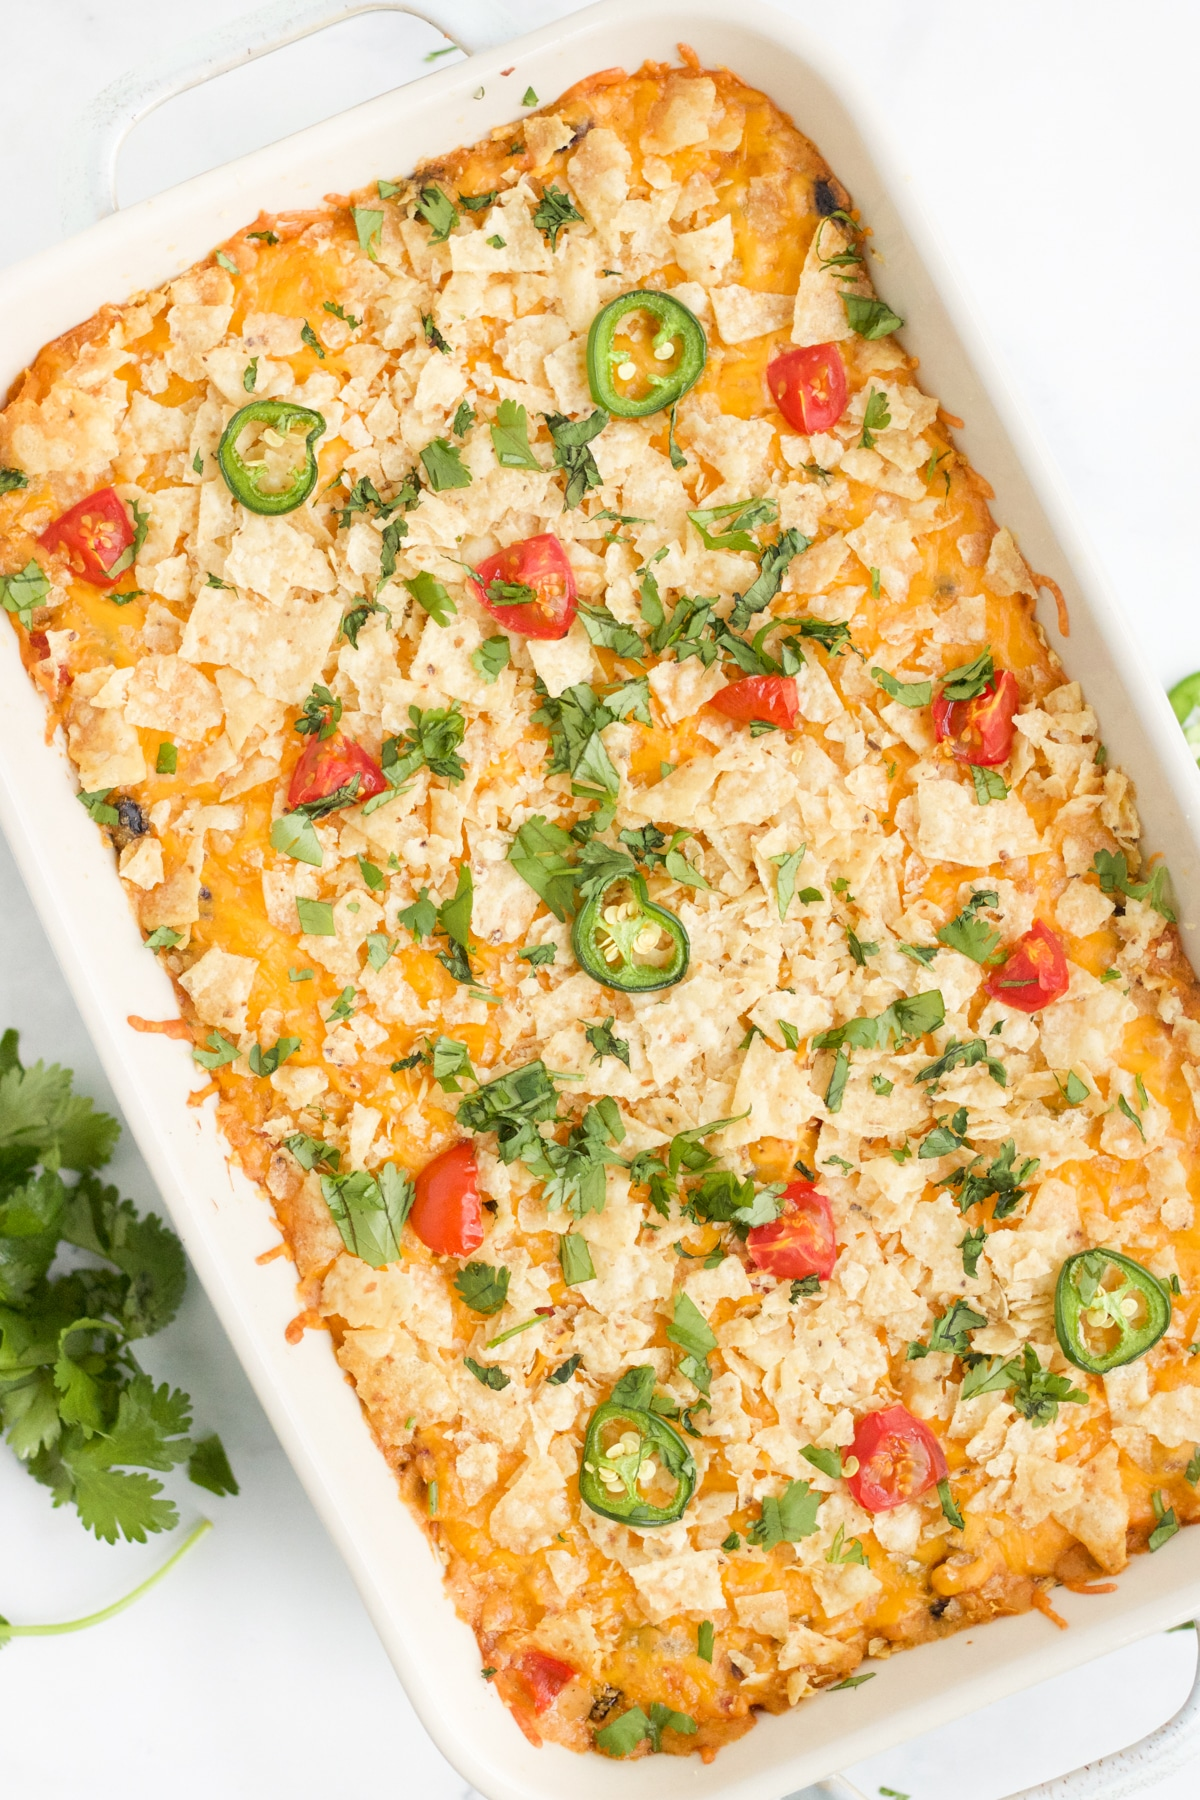 Overhead image of chicken taco casserole bake. The casserole is garnished with herbs, tomatoes and jalapeños.